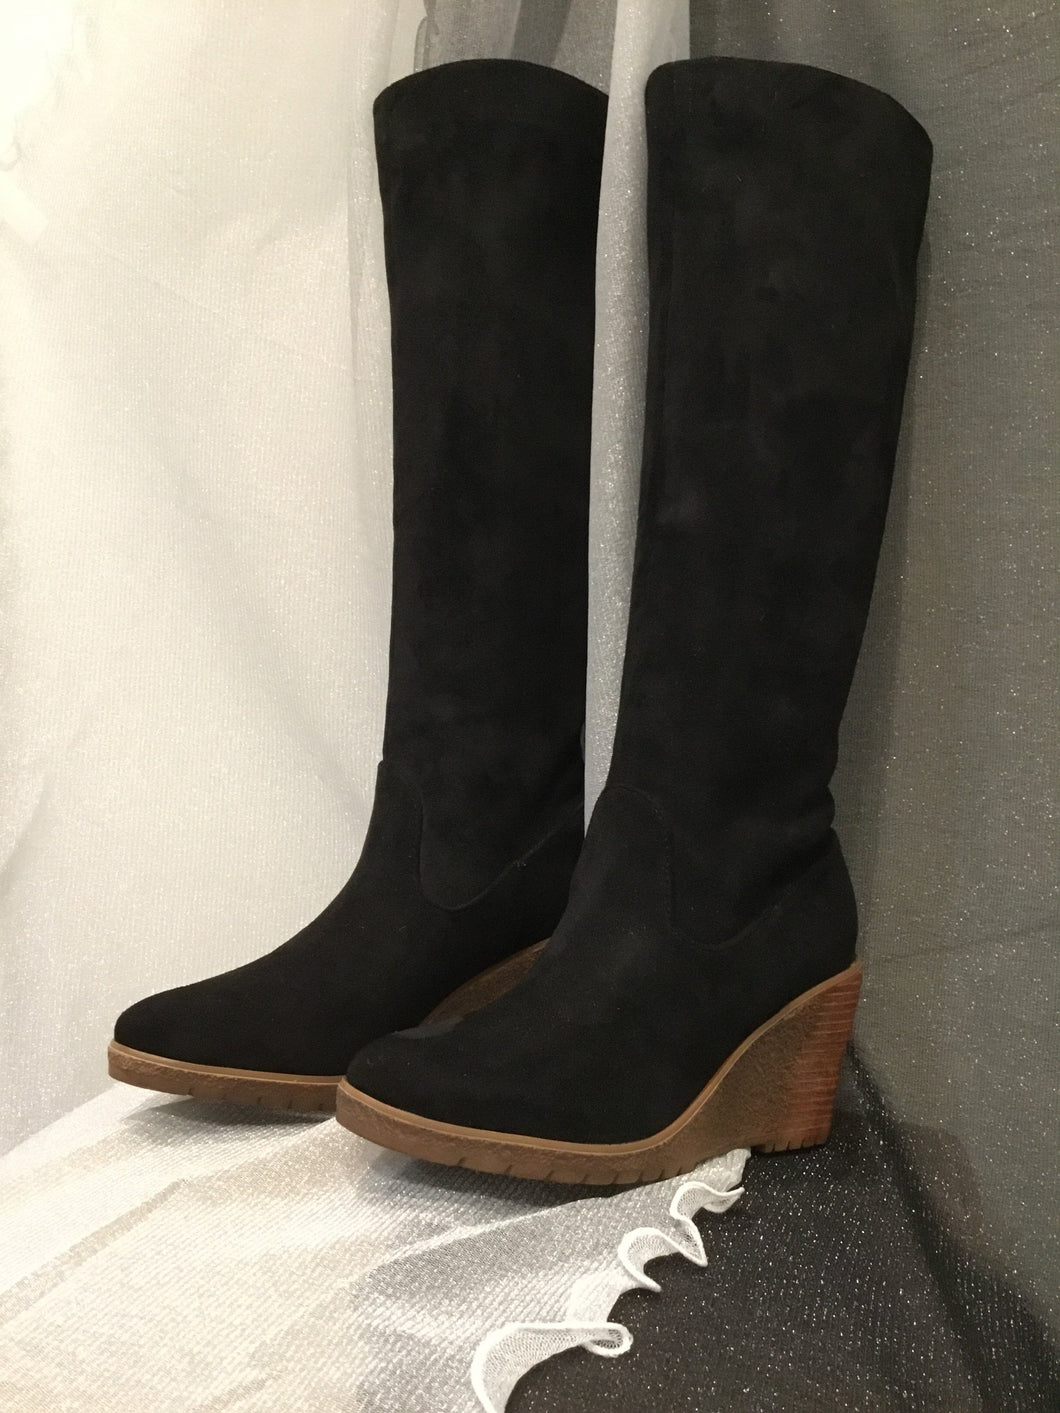 LIGHTWEIGHT WEDGE HEEL SOFT SUEDE KNEE-HIGH BOOTS